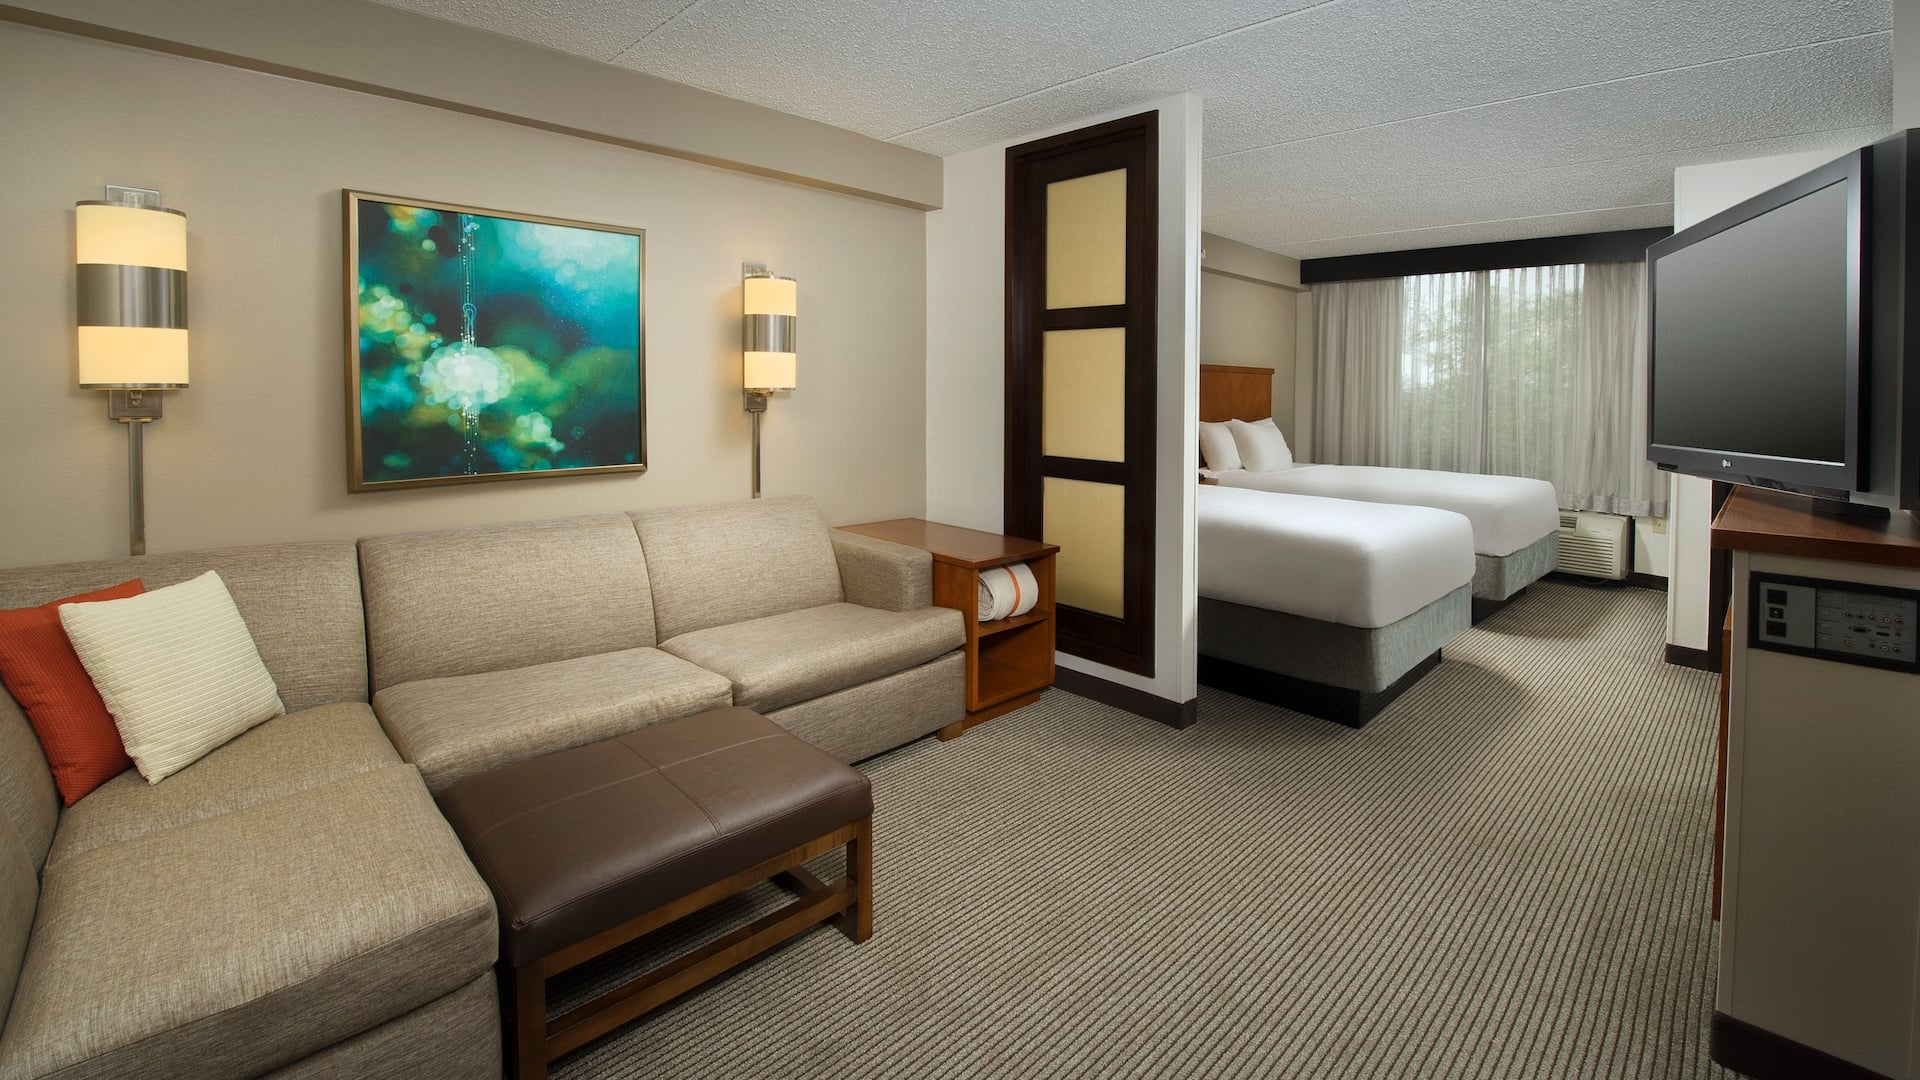 San Antonio Hotel with double rooms – Hyatt Place Hotel San Antonio-Northwest/Medical Center